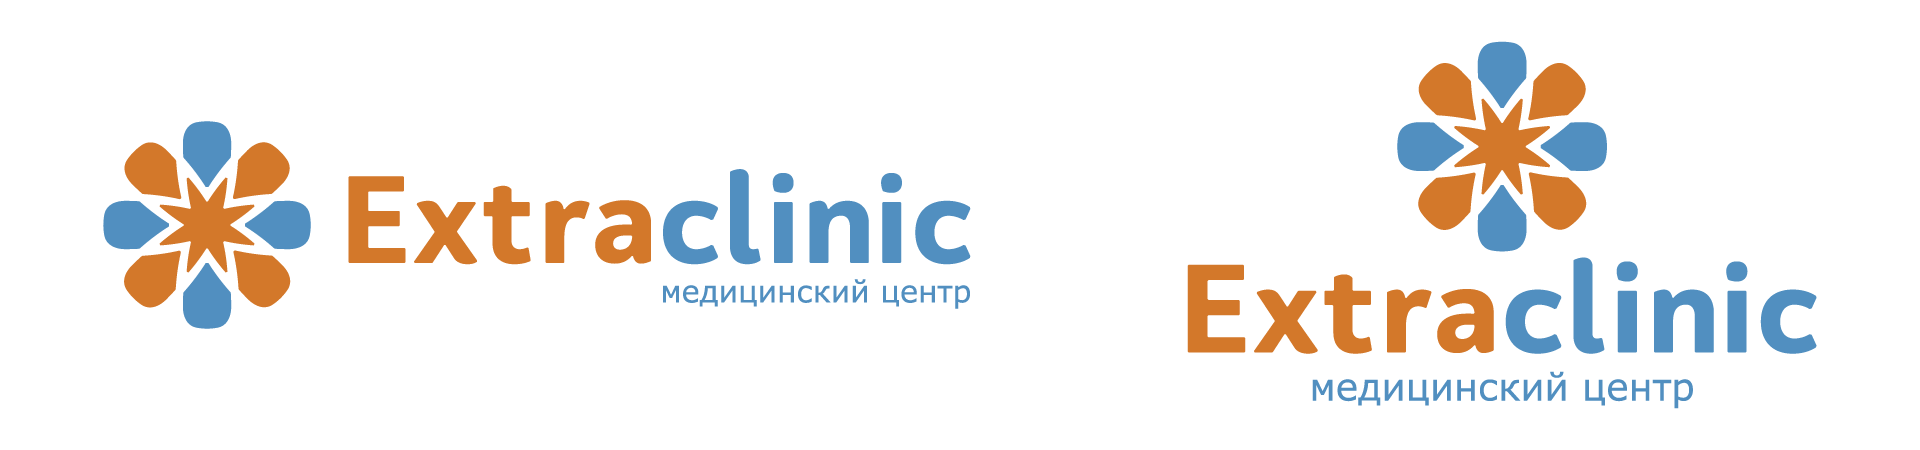 Extraclinic - HMS Brands - брендинг